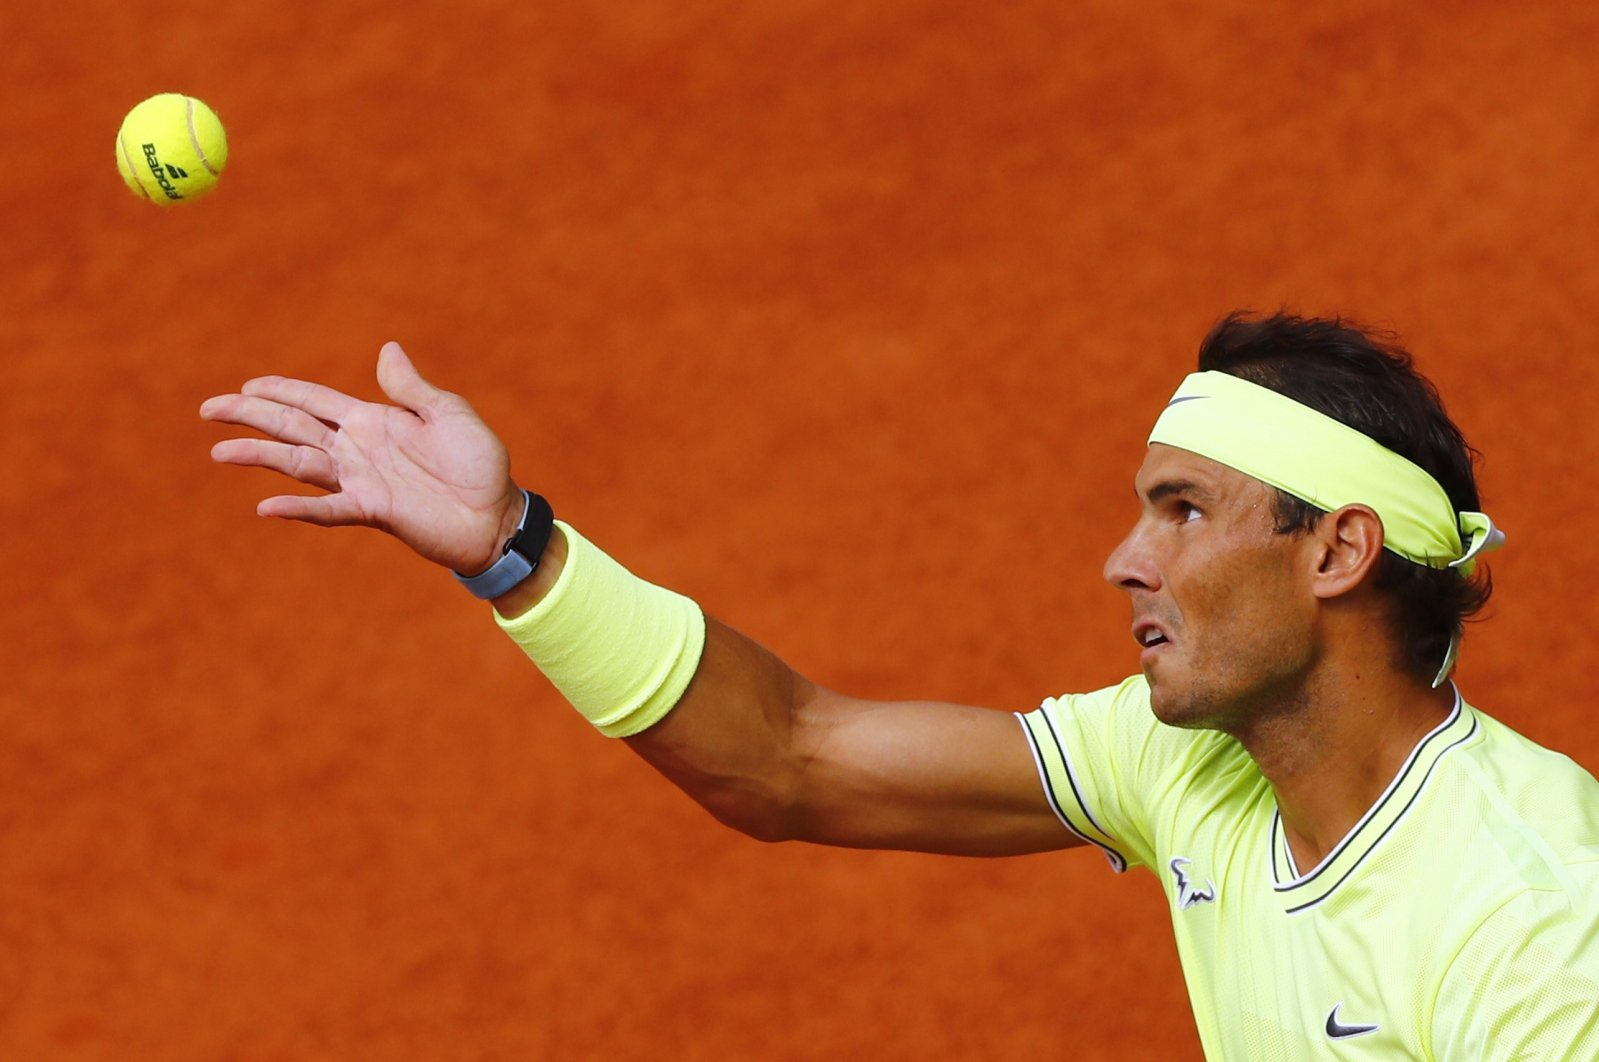 Spain's Rafael Nadal in action during the French Open final match against Dominic Thiem, in Paris, France, June 9, 2019. (Reuters Photo)